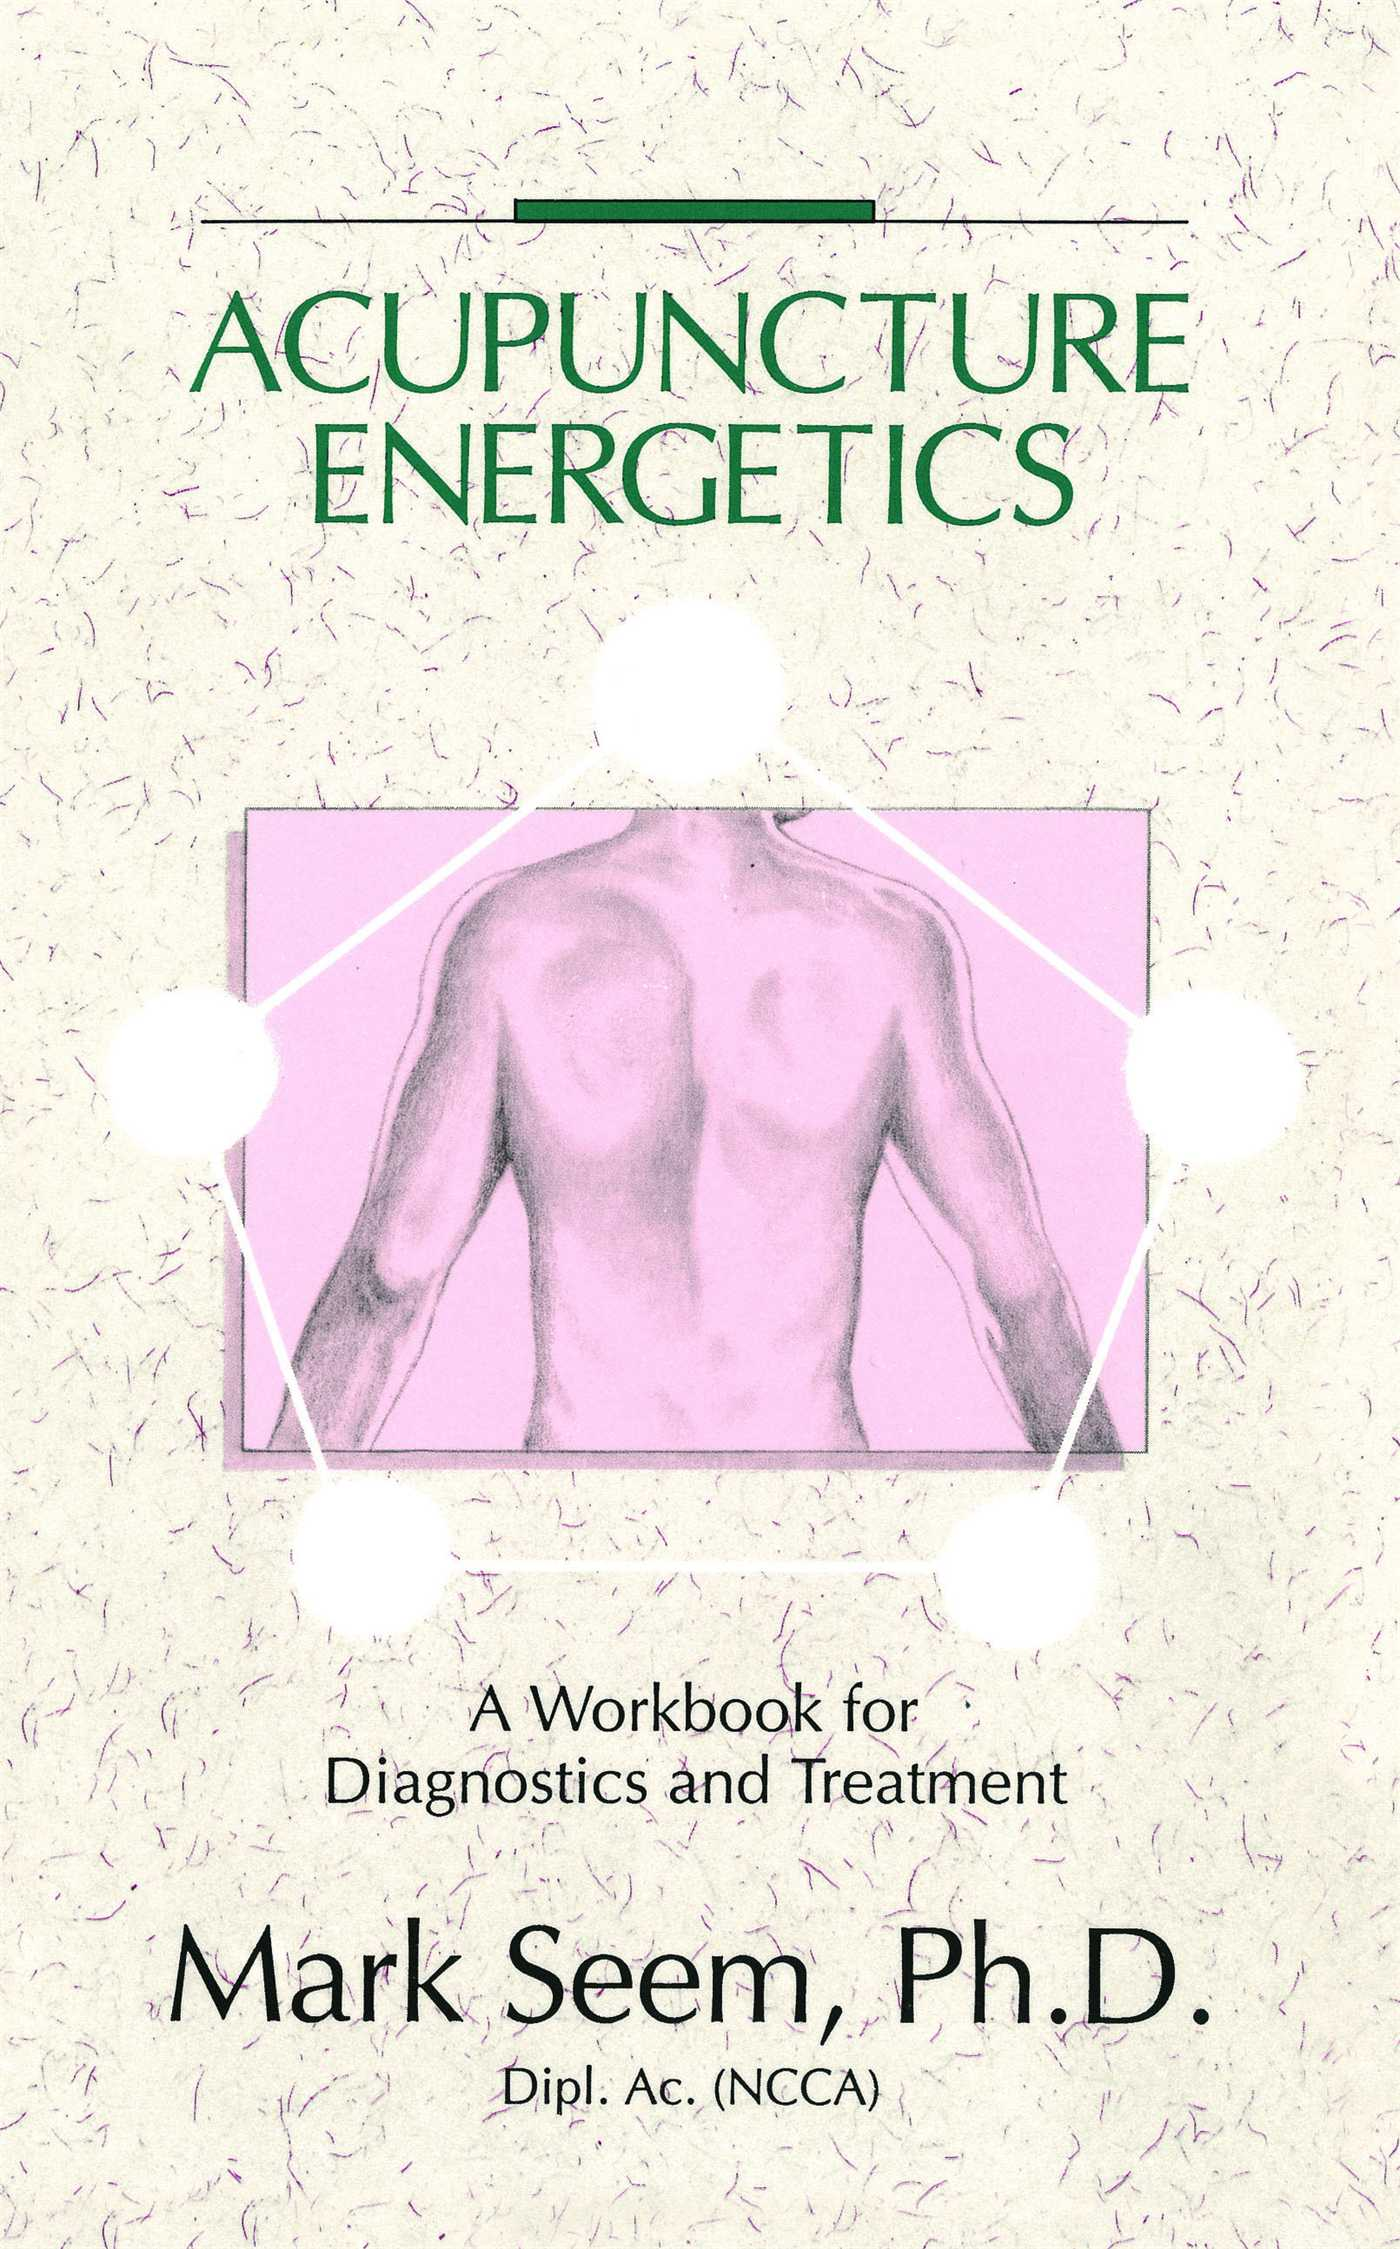 Acupuncture-energetics-9780892814350_hr